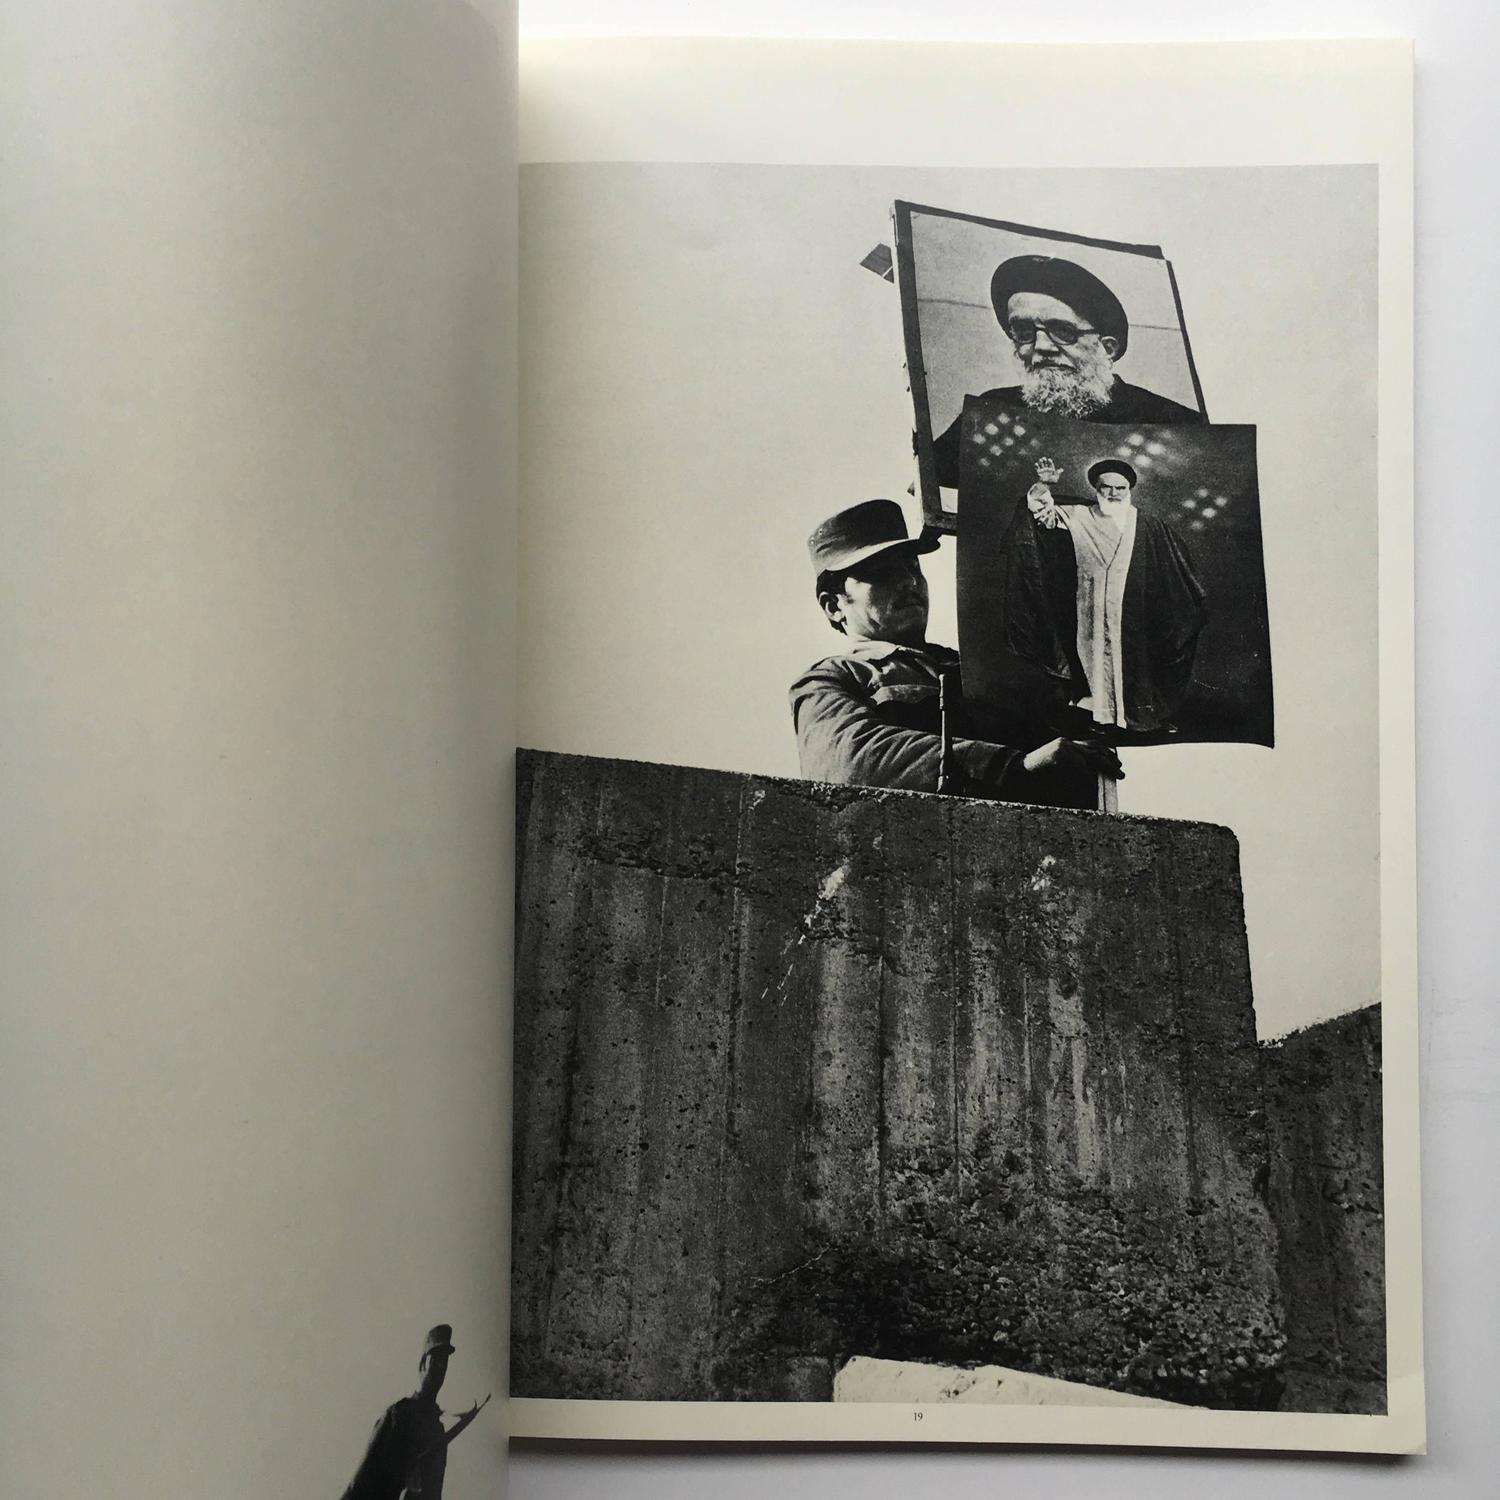 Gilles Peress, Telex Persan Book, 1984 For Sale at 1stdibs